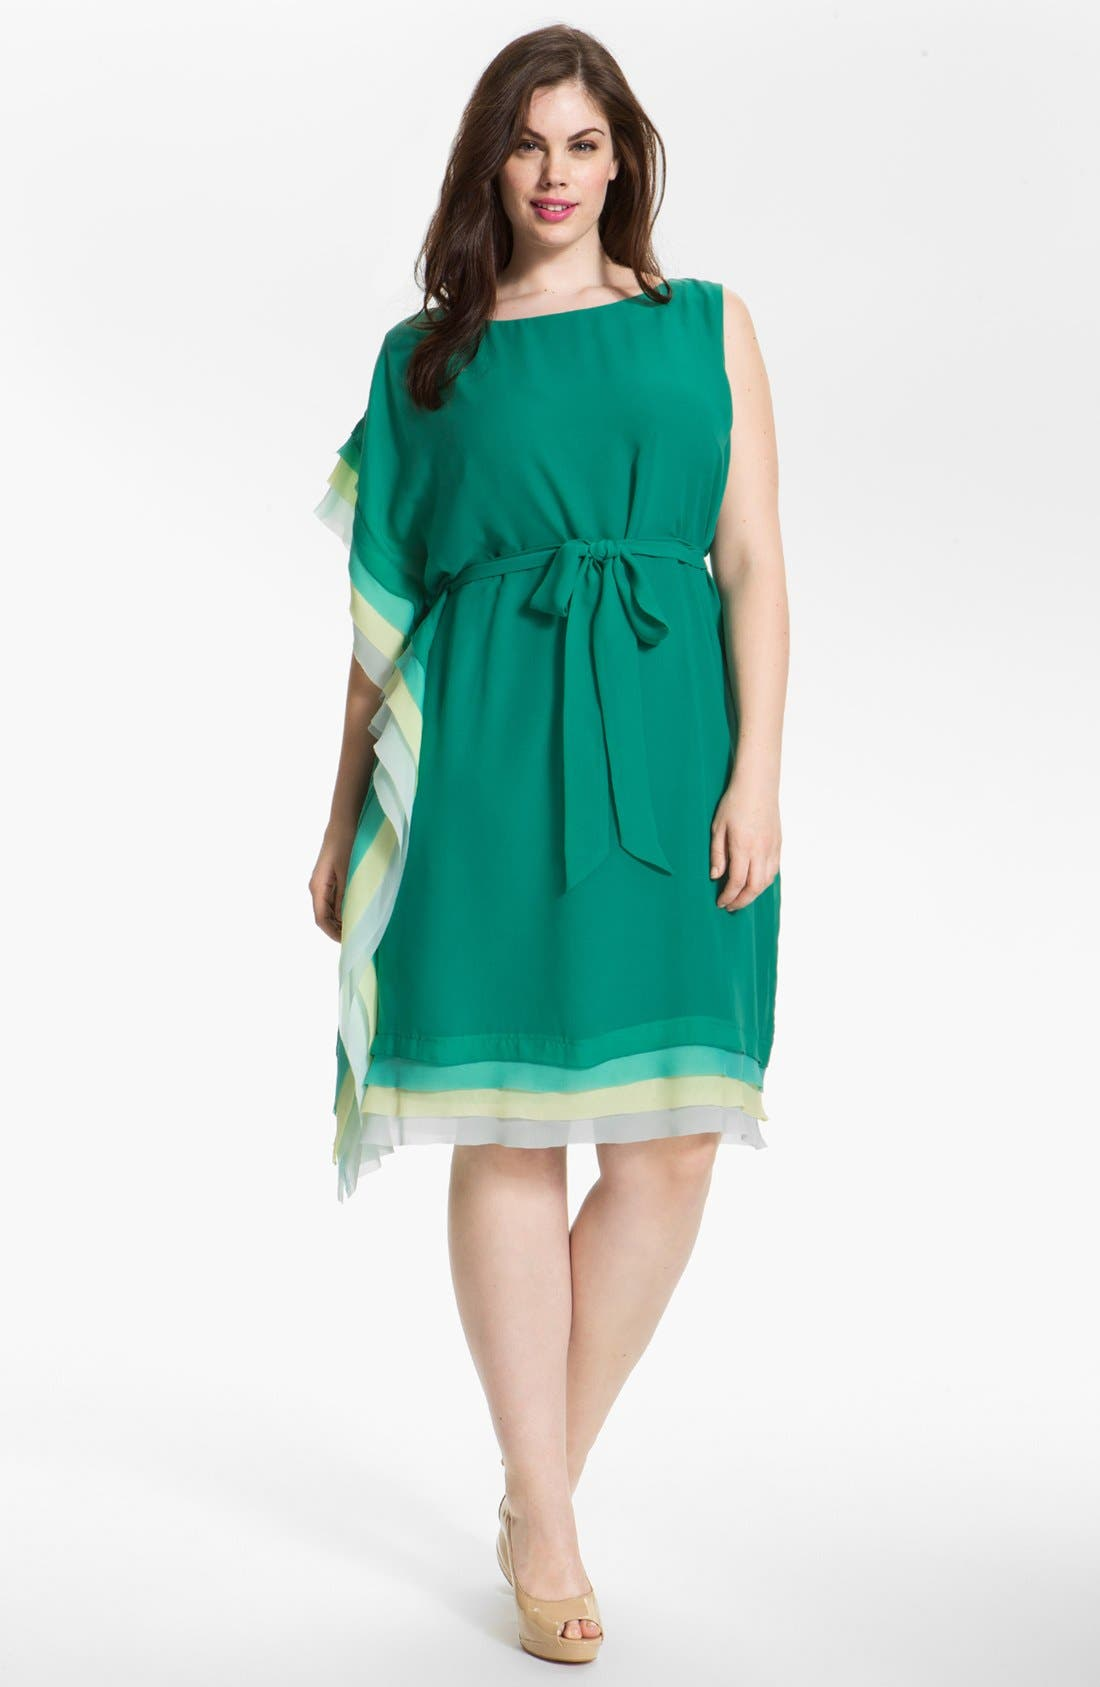 Alternate Image 1 Selected - Vince Camuto Asymmetrical Tiered Dress (Plus Size) (Online Only)